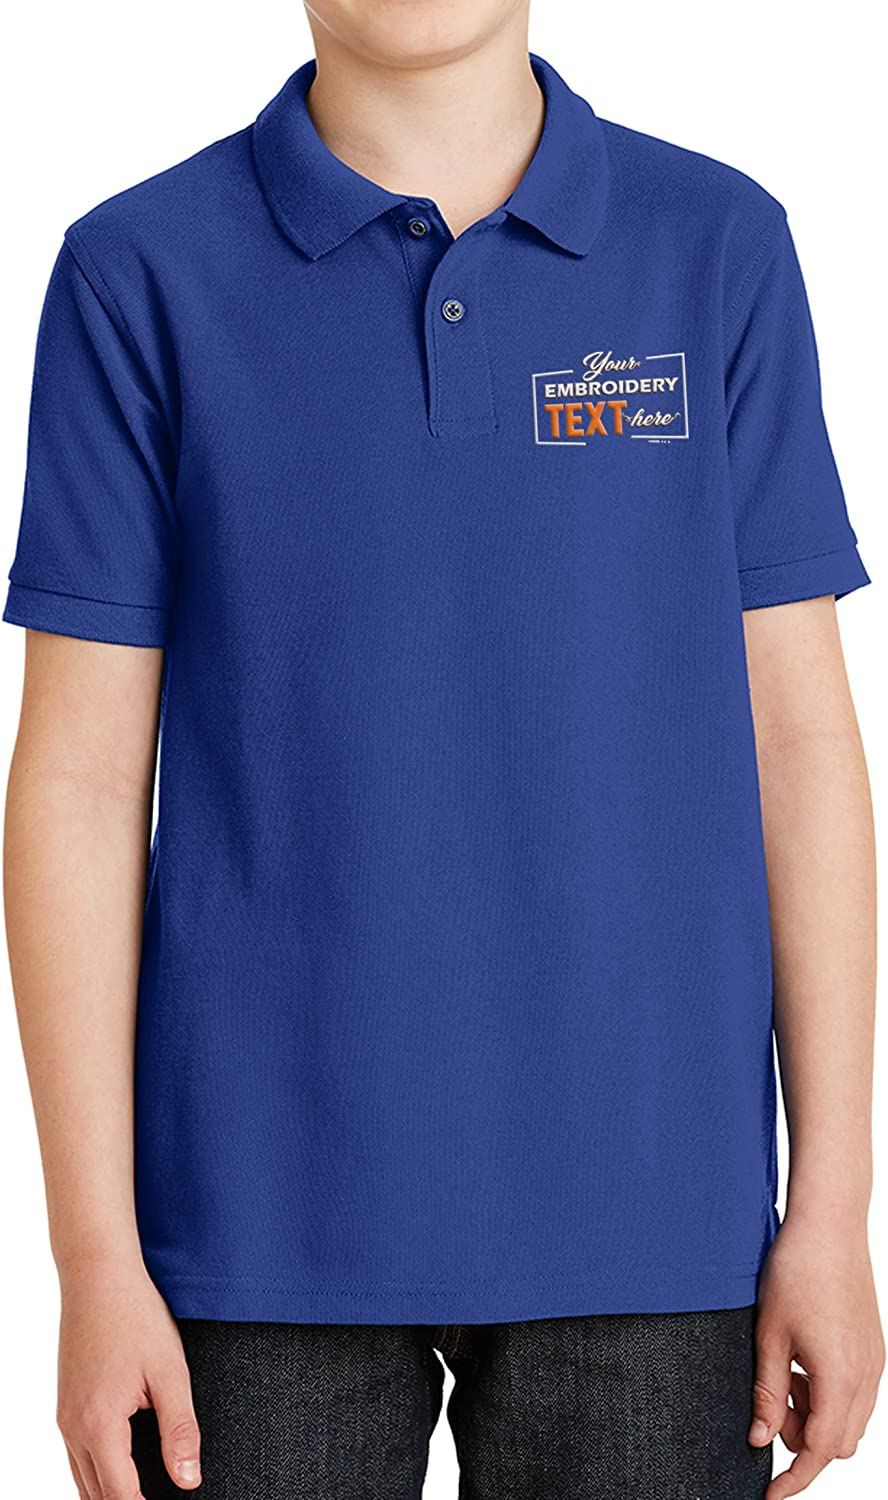 Custom Embroidered Jersey Polo Shirts for Youth Personalized Add Your Own Text